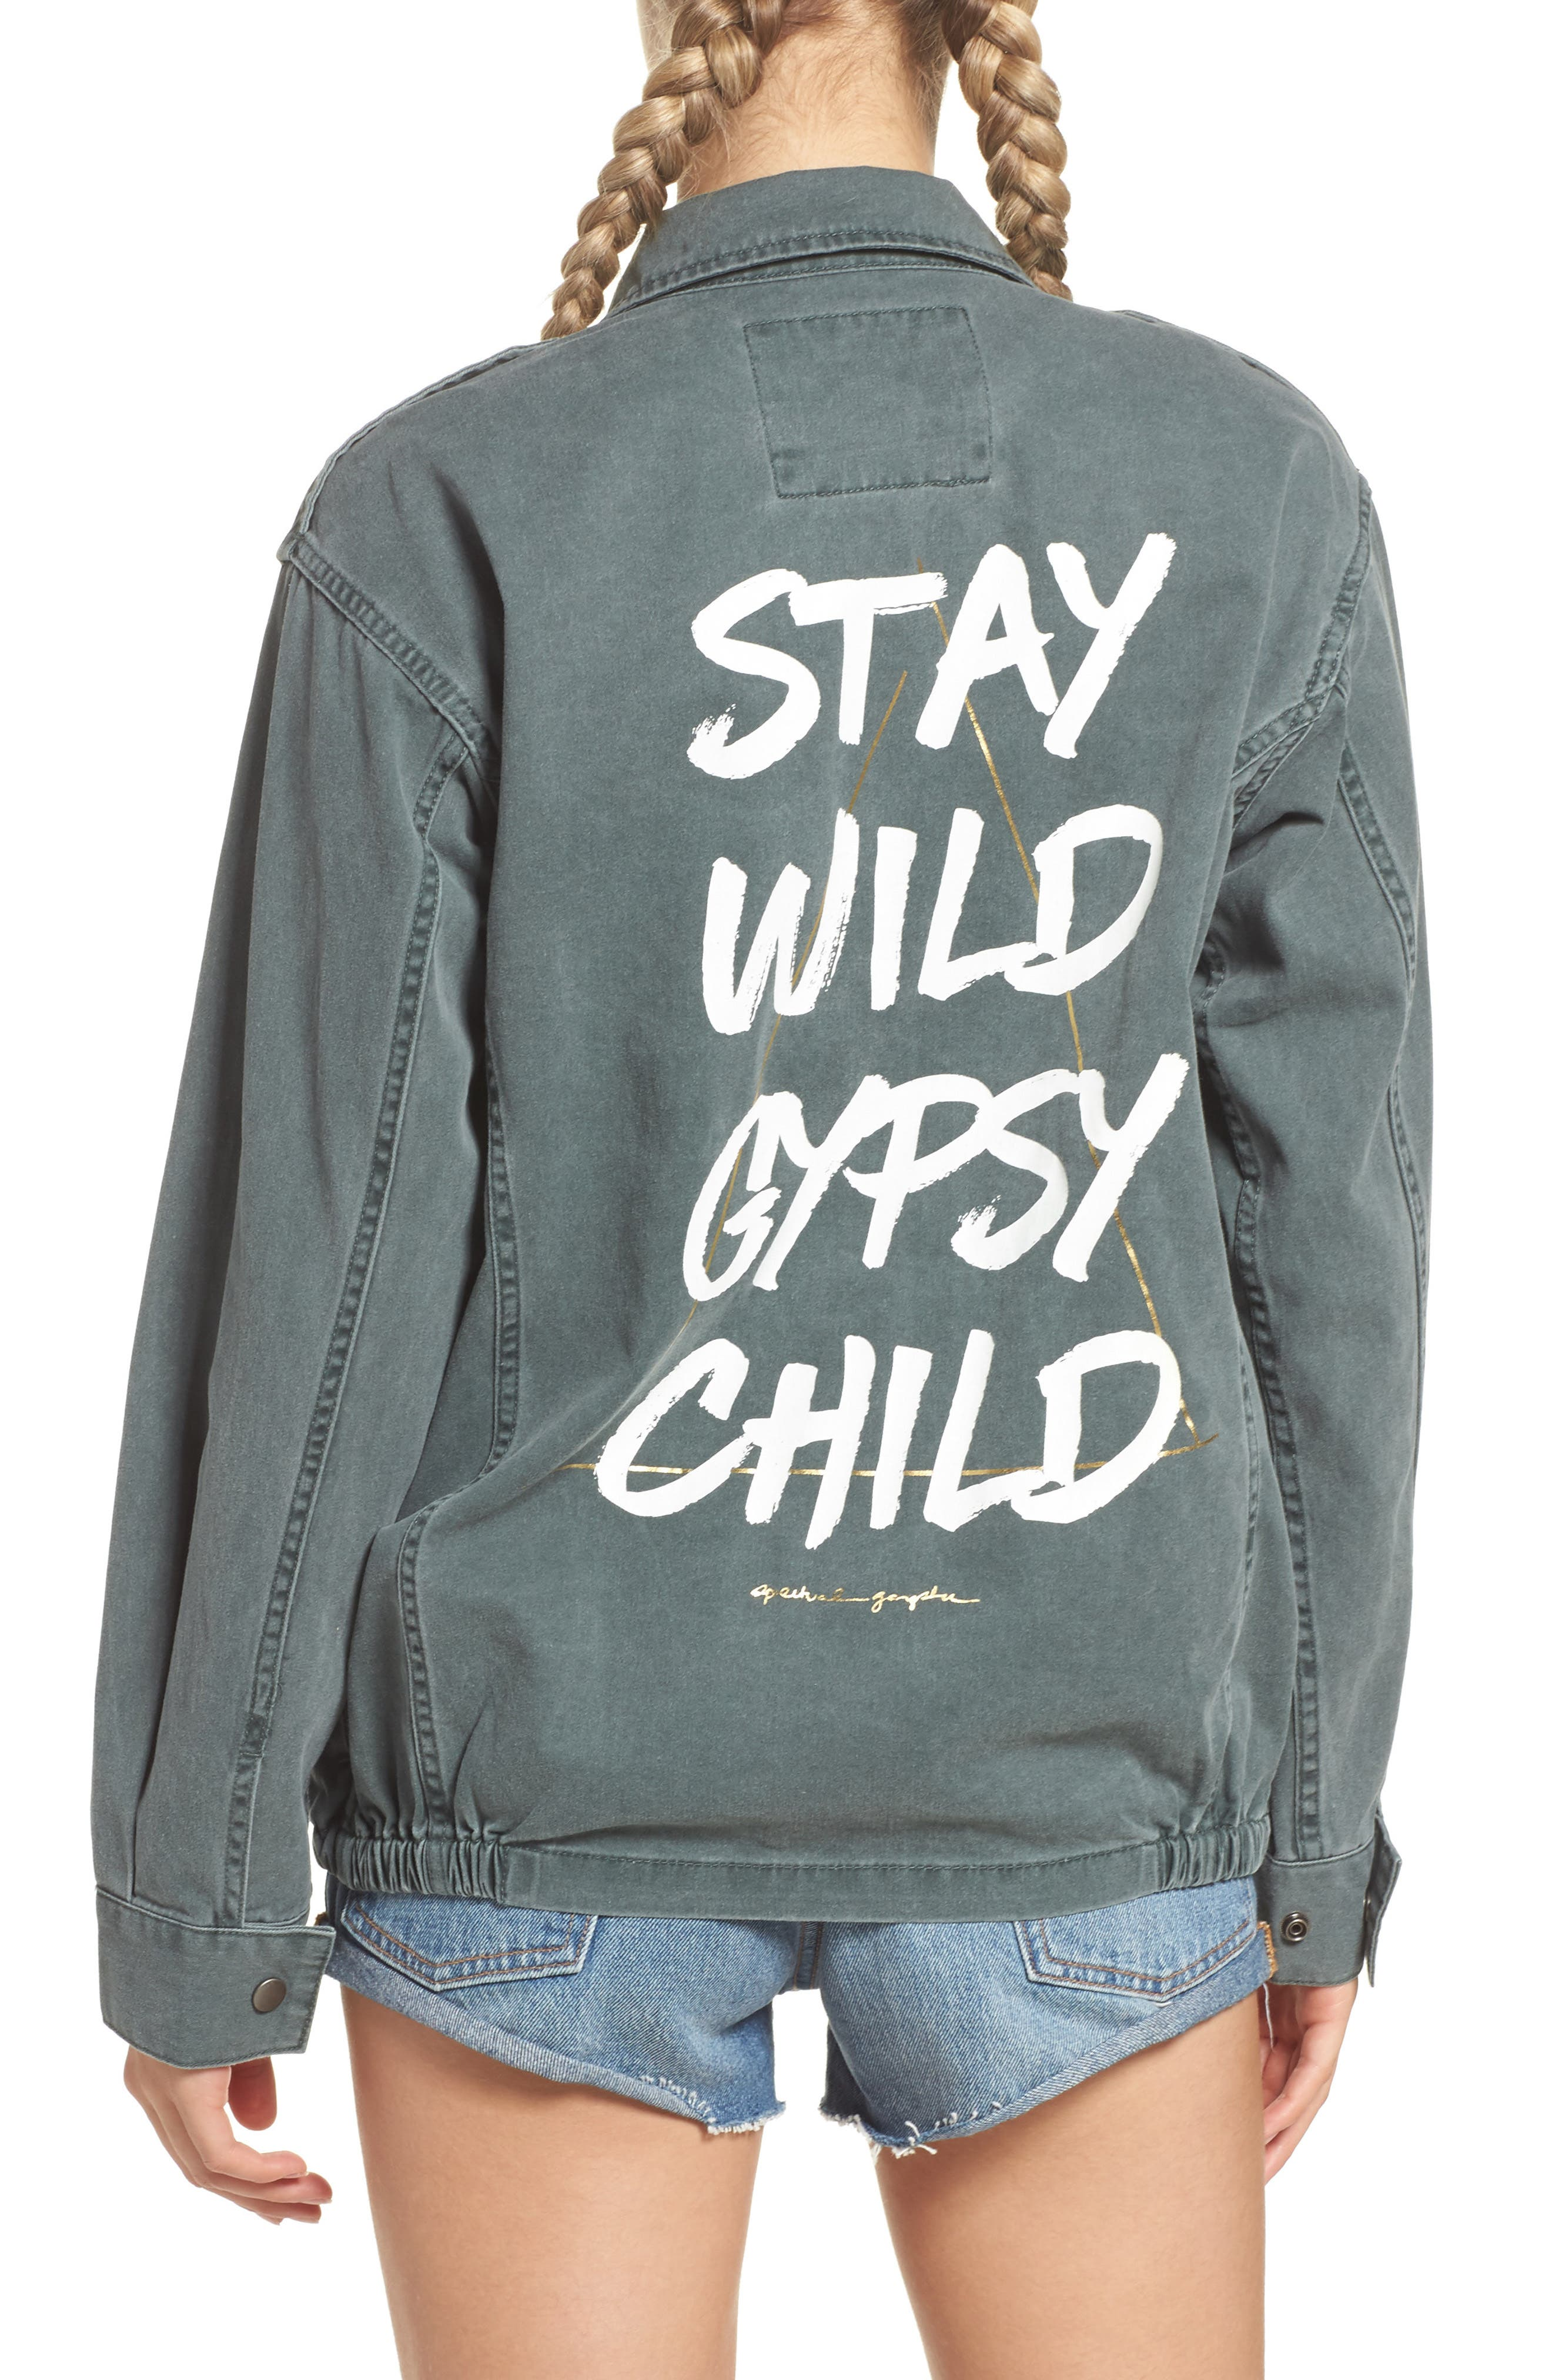 Stay Wild Gypsy Child Amy Jacket,                             Alternate thumbnail 2, color,                             Army